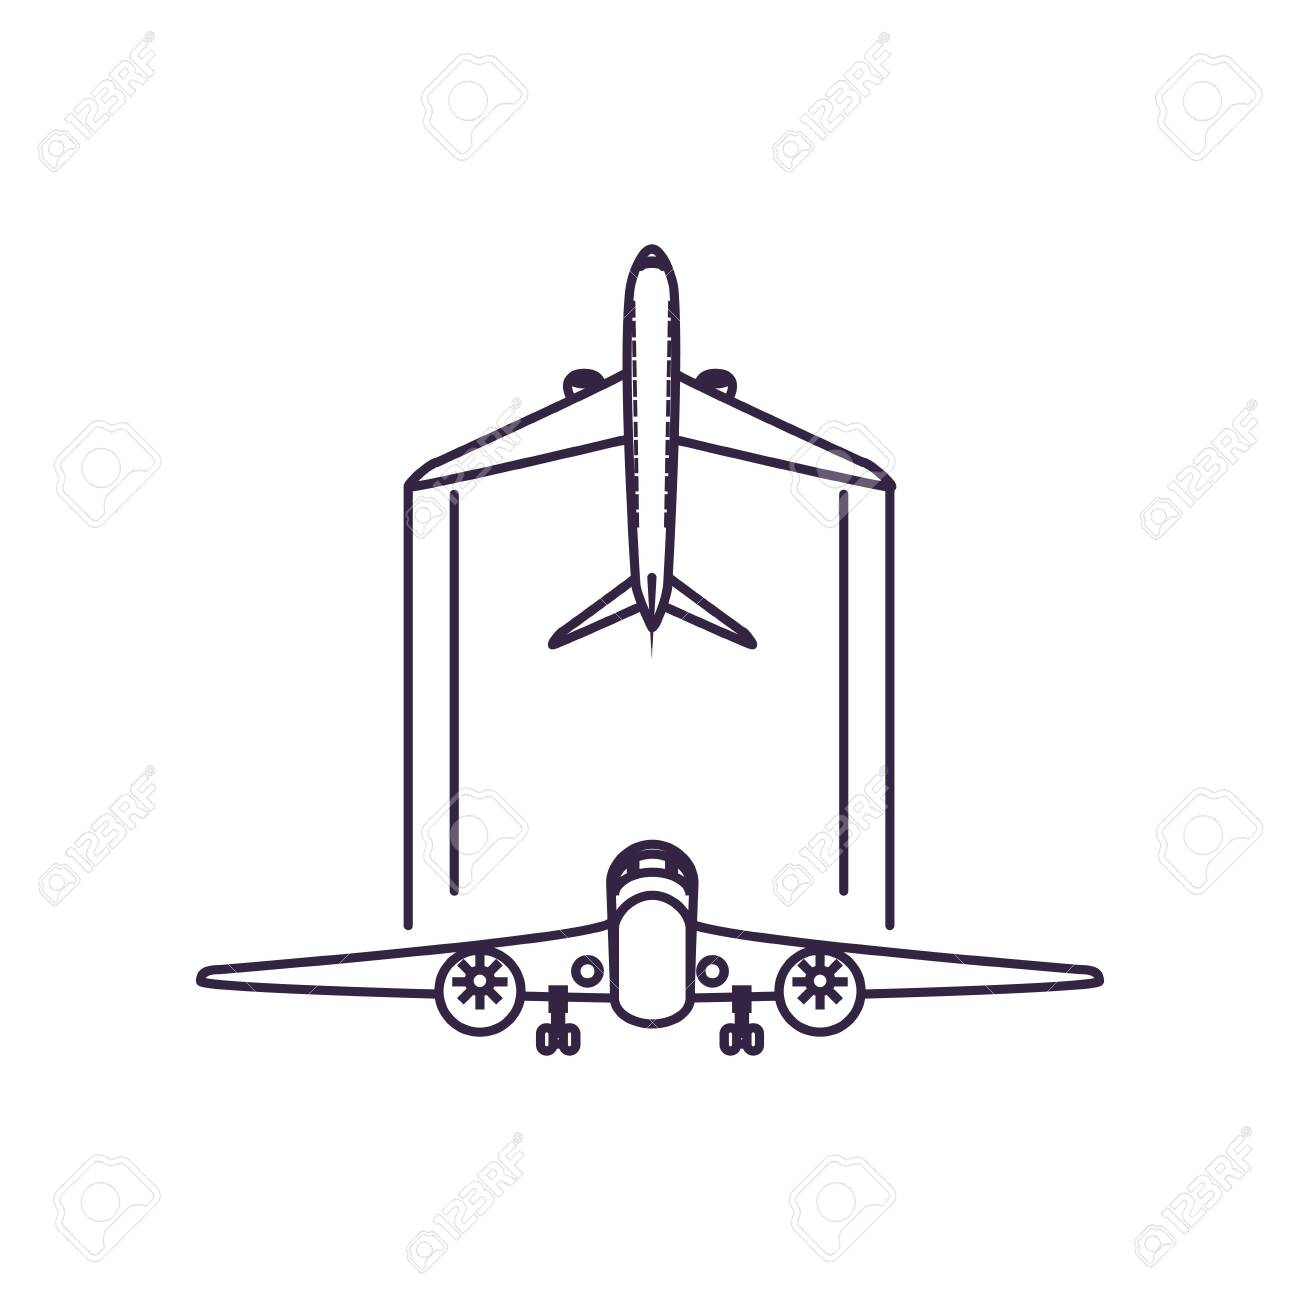 Airplanes Flying Vehicles Isolated Icon Vector Illustration Design Royalty Free Cliparts Vectors And Stock Illustration Image 140806947